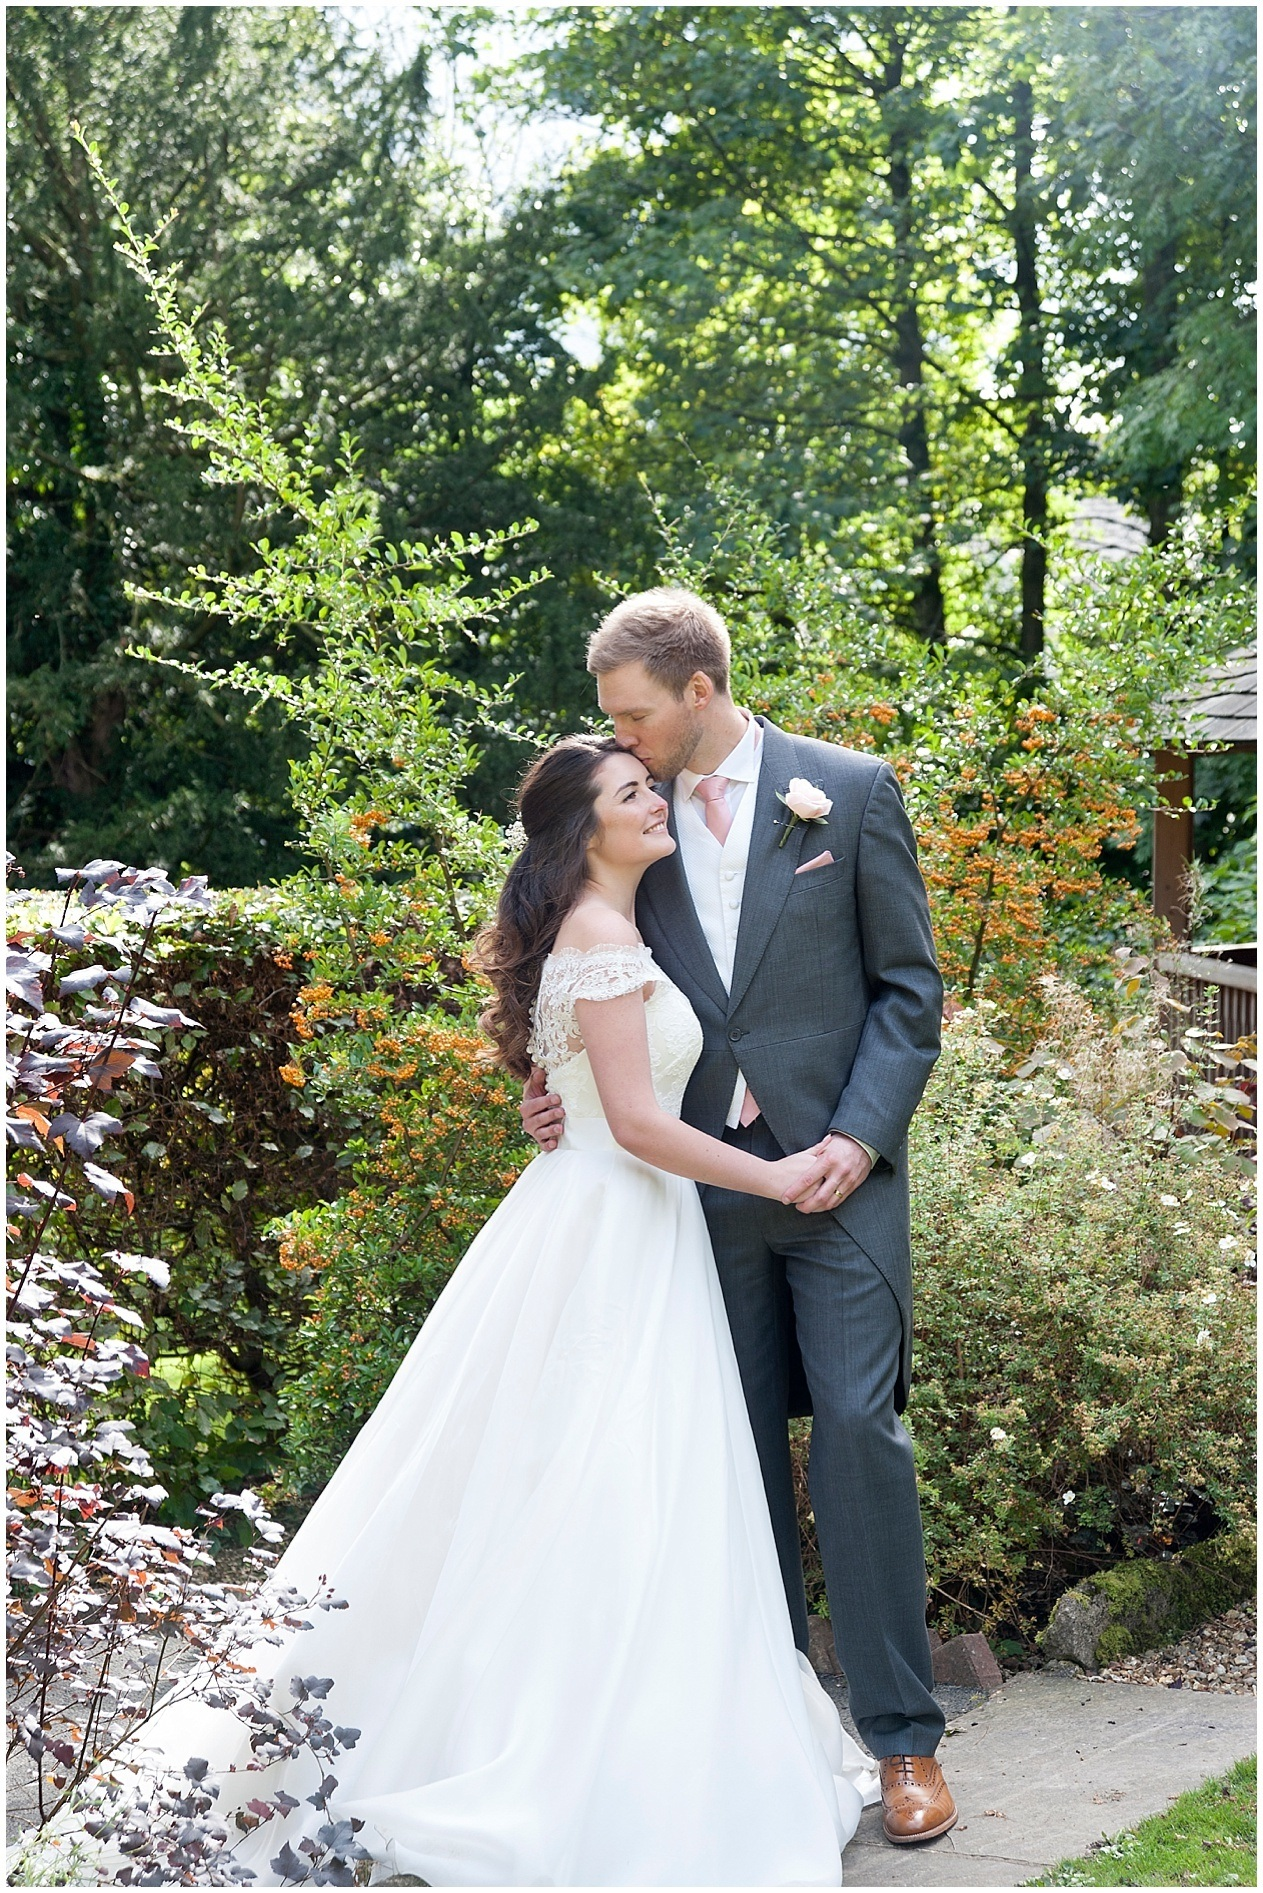 The Old Swan Hotel in Harrogate wedding photography. Bride and groom pictured together in the hotel gardens